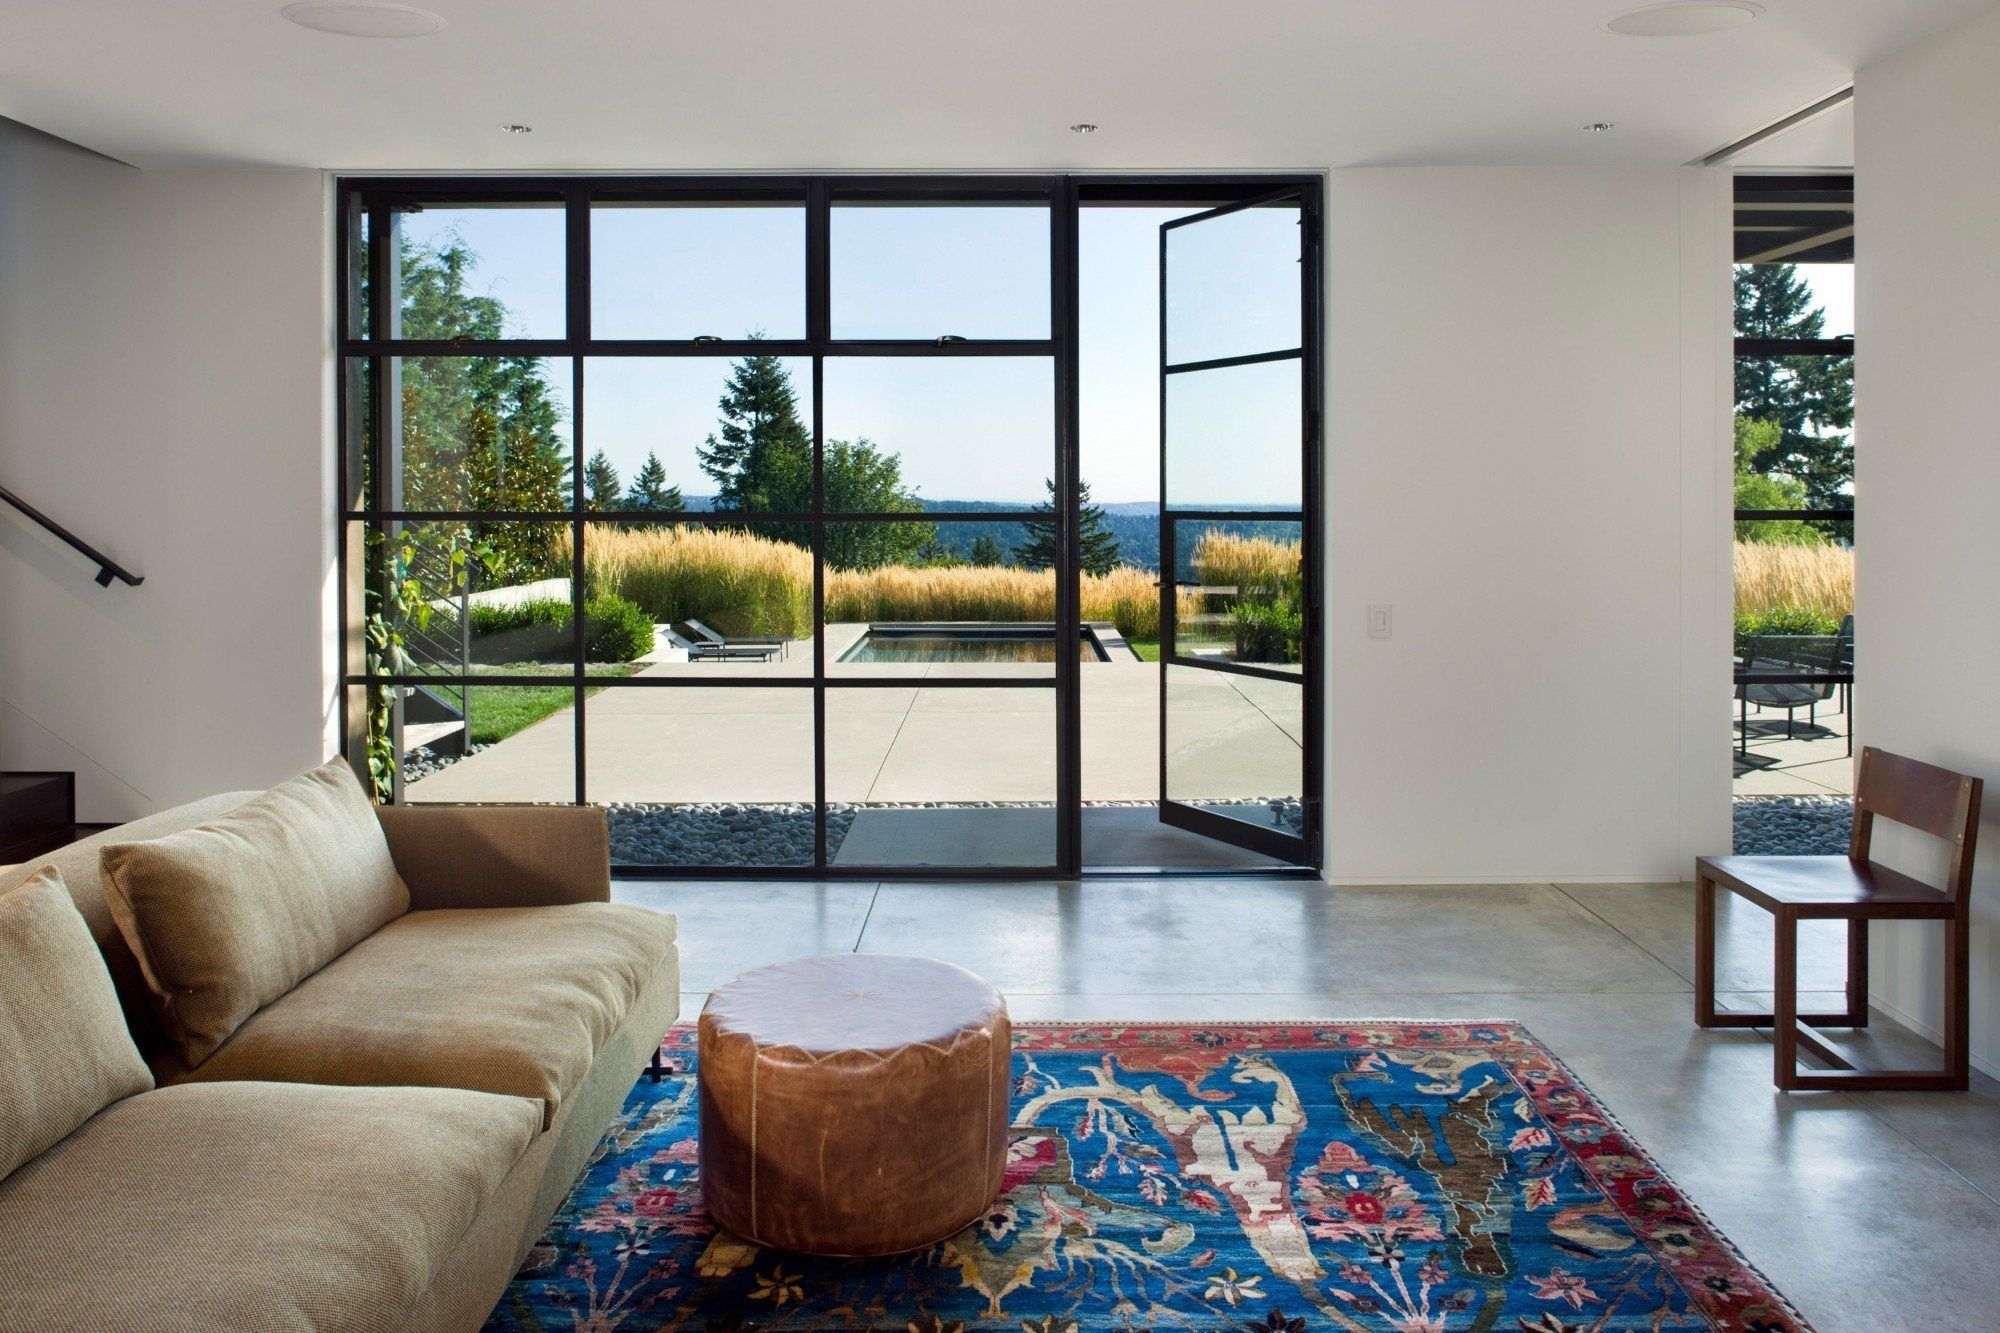 http://www.olsonkundig.com/projects/portland-hilltop-interiors/